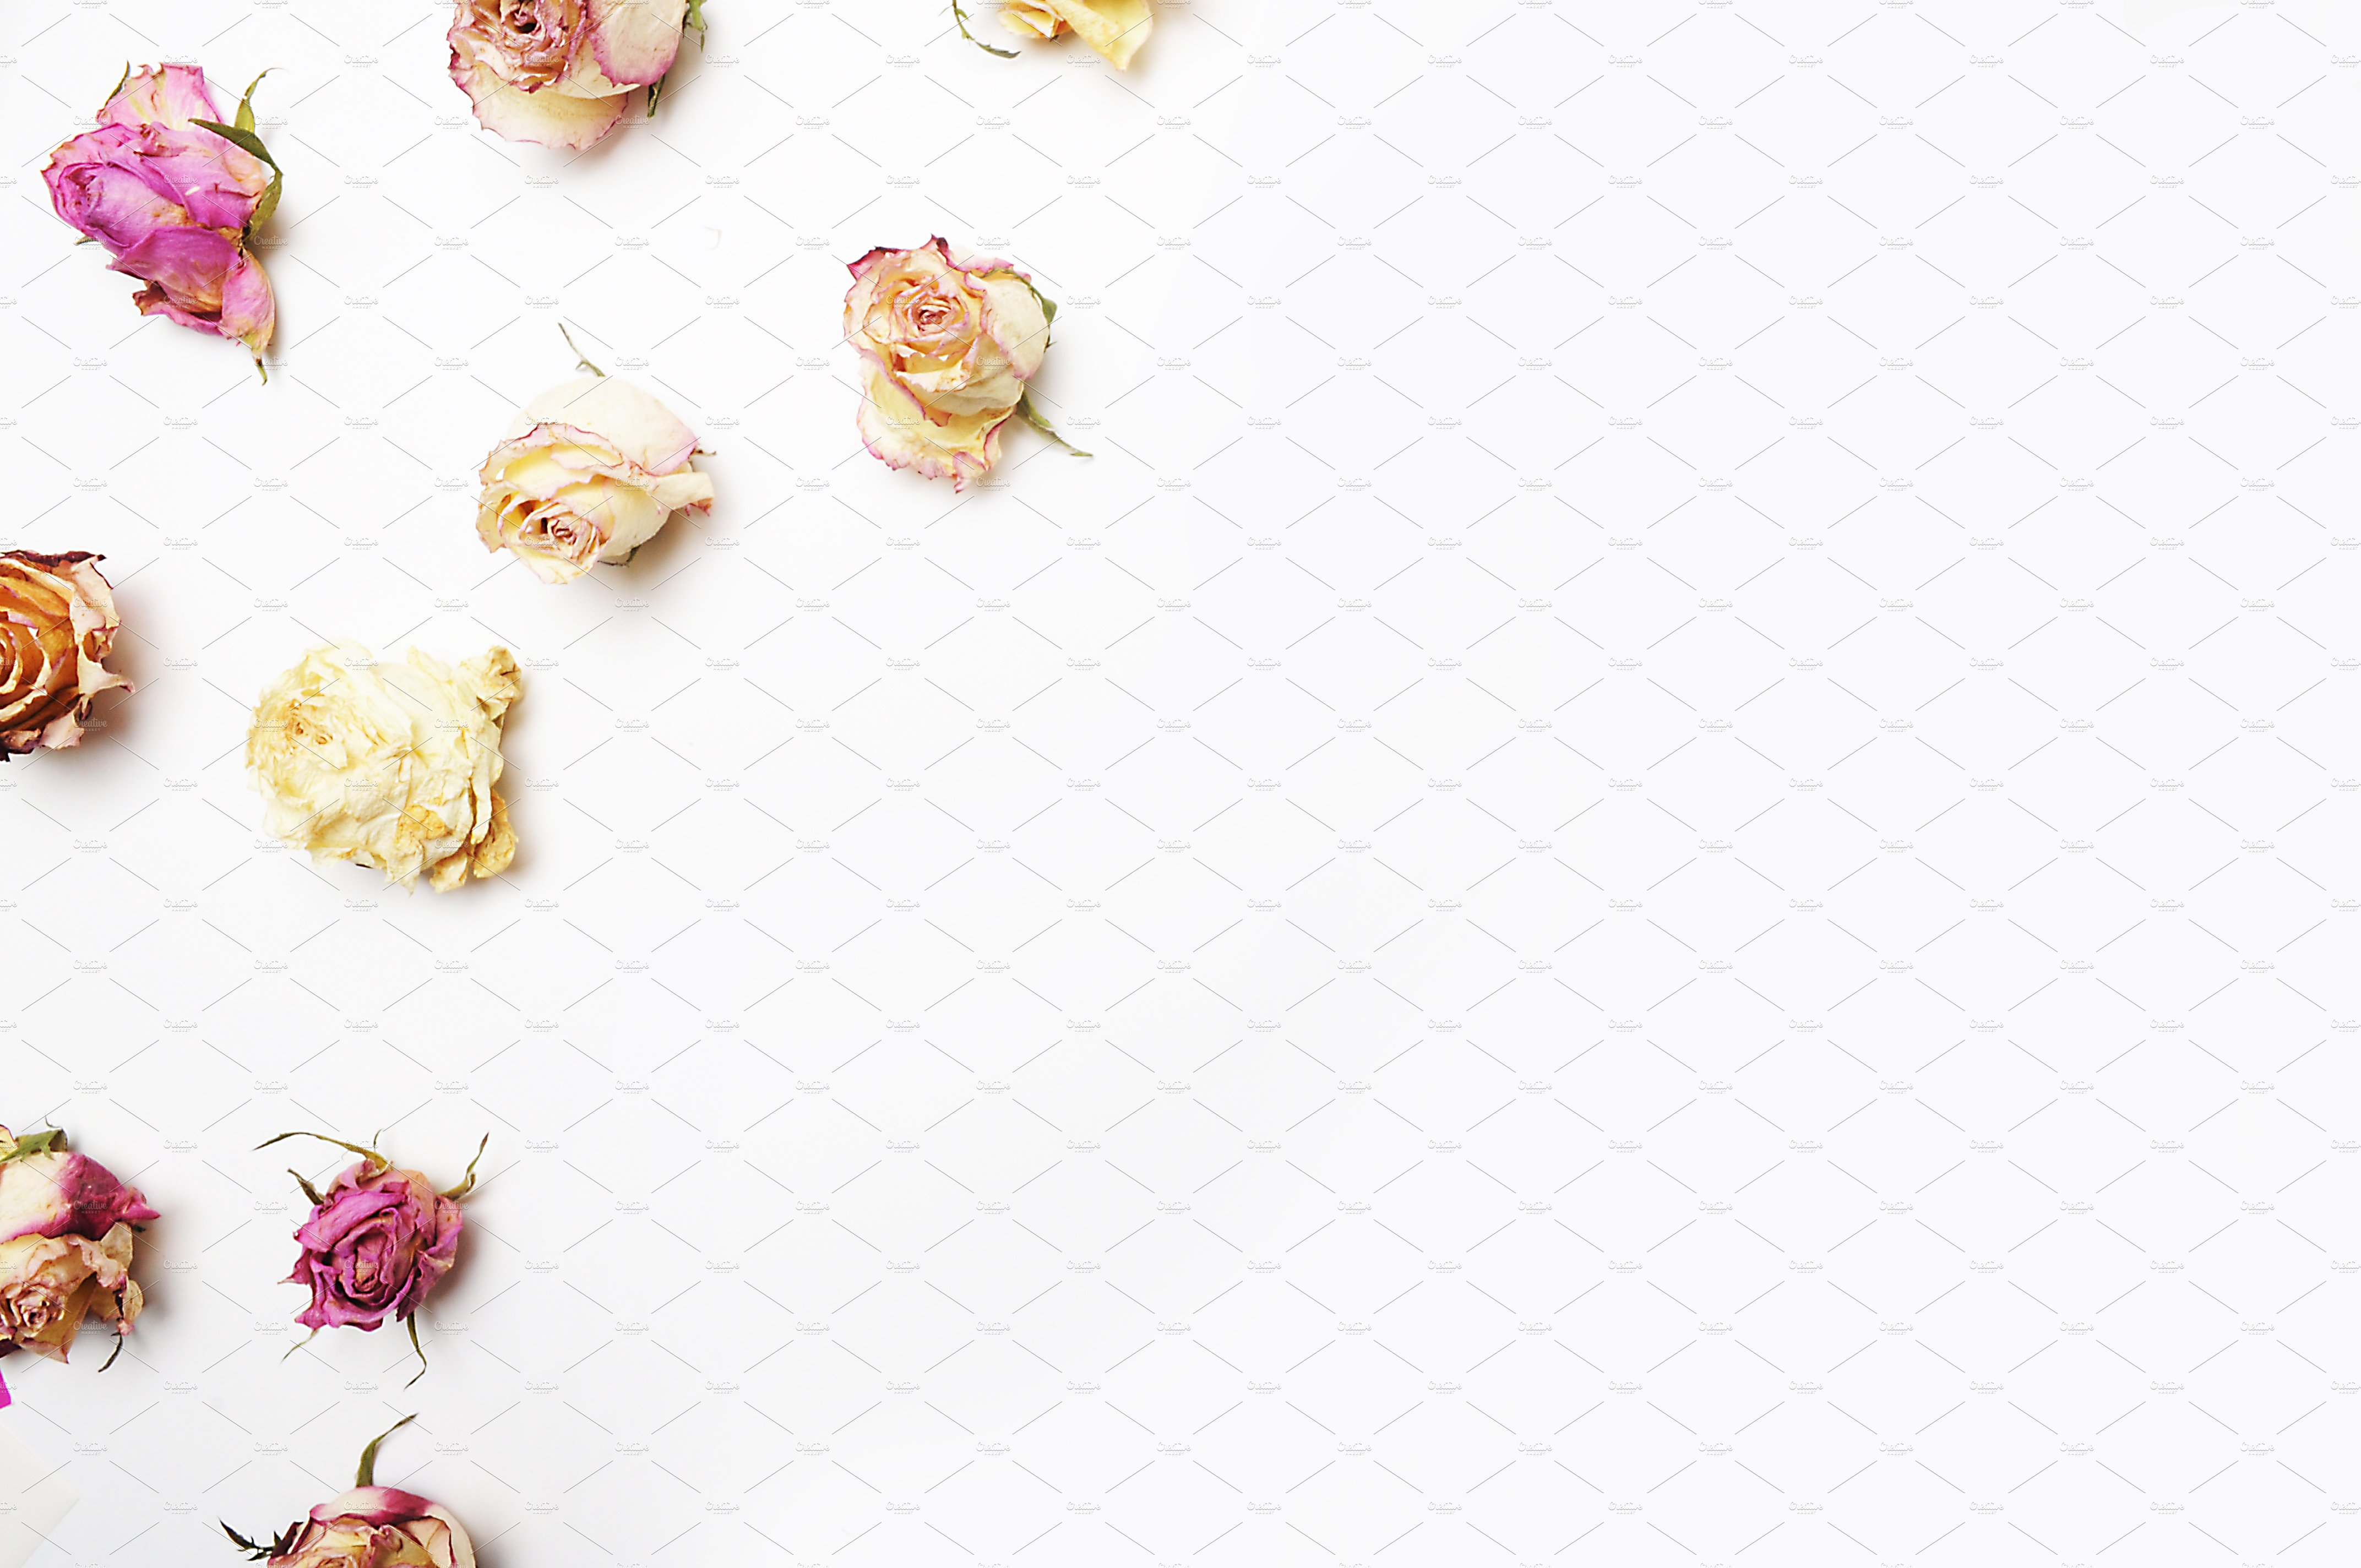 Floral Mockup Pack example image 5